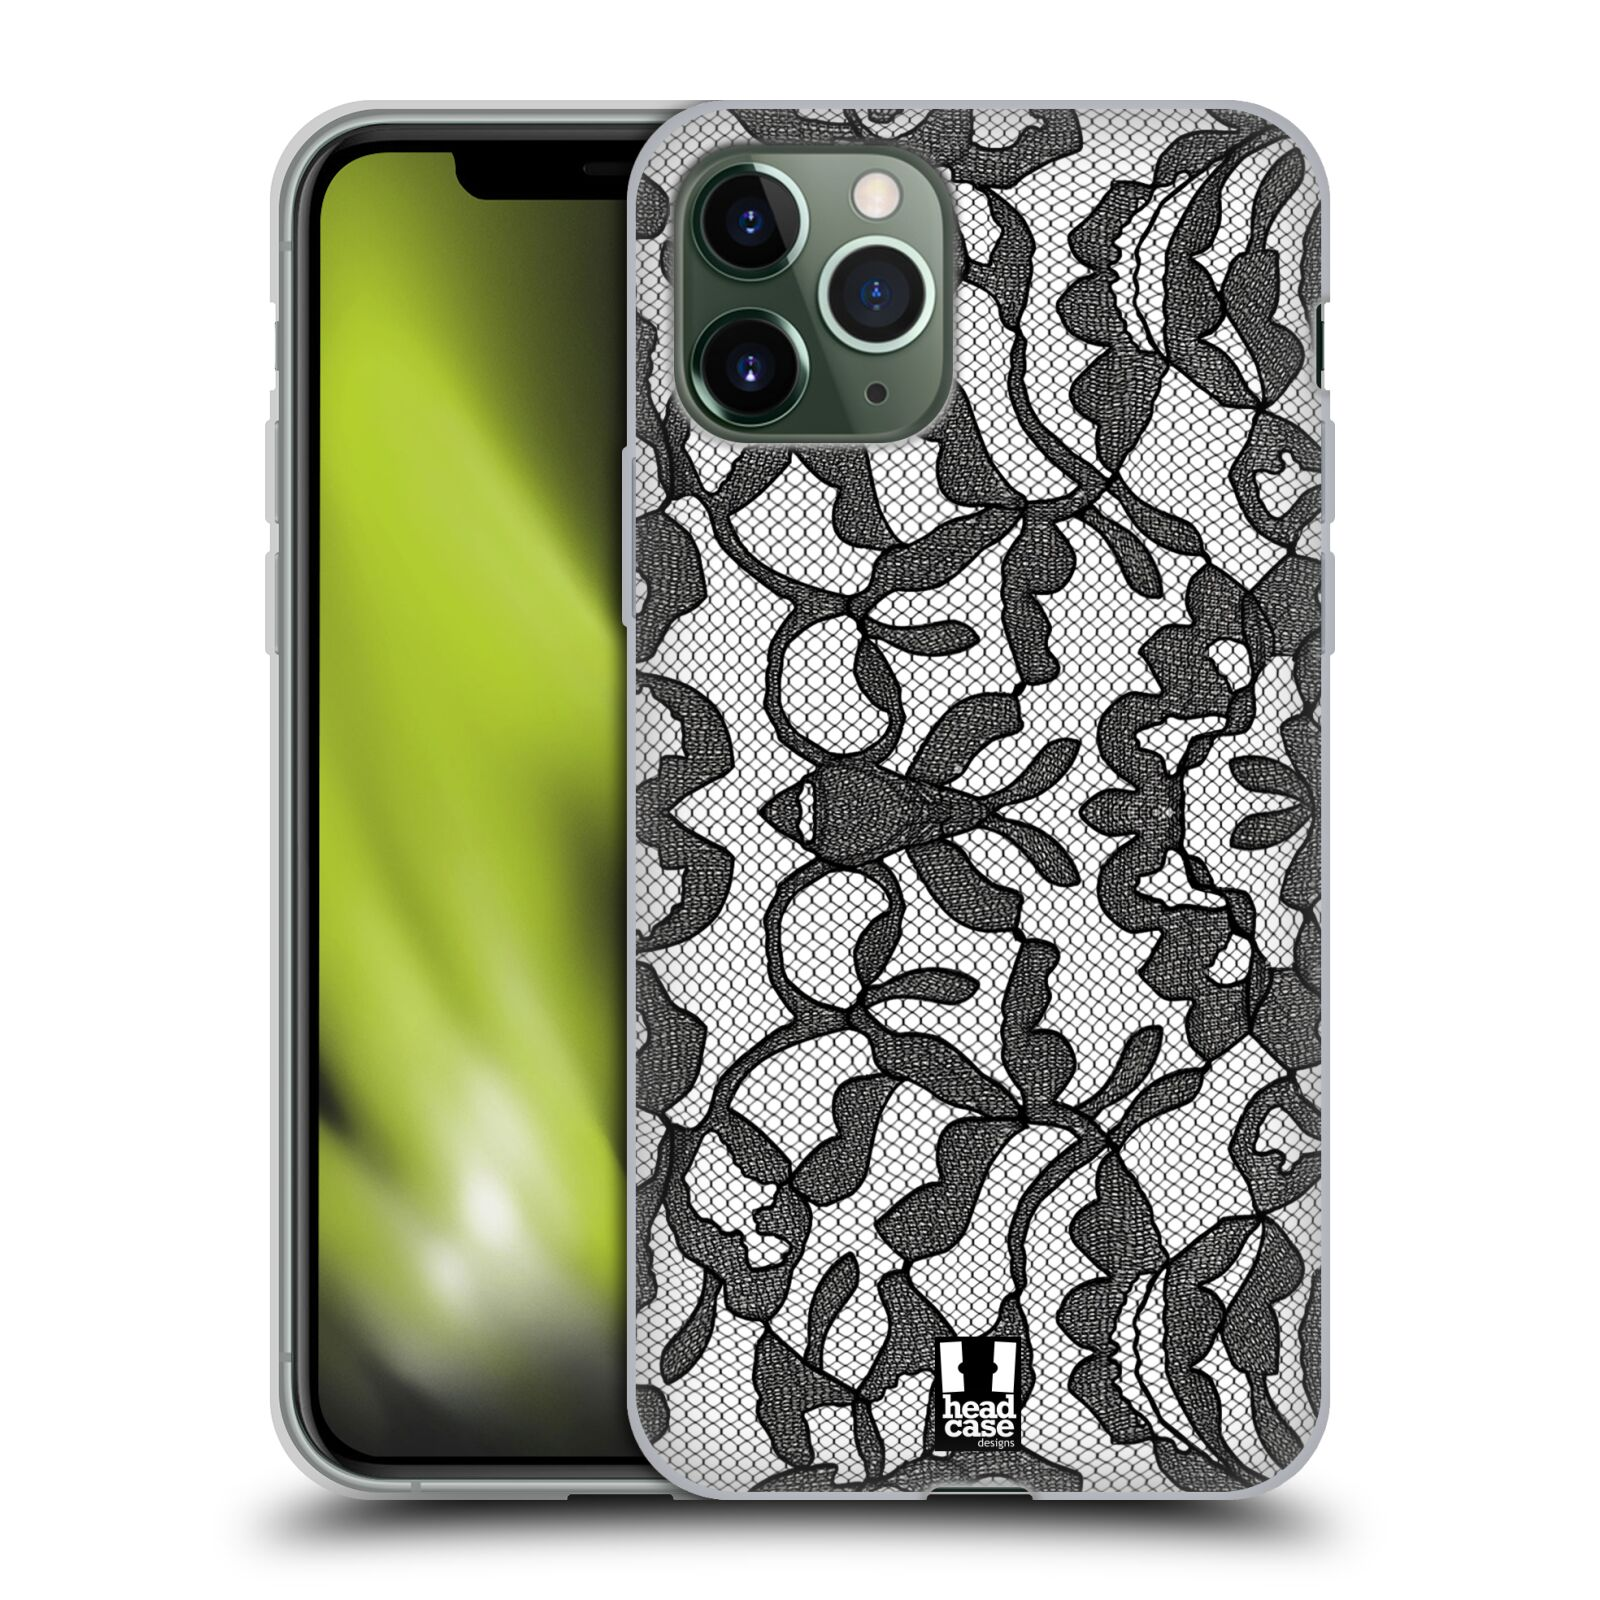 gucci bloom iphone case 8 plus - Silikonové pouzdro na mobil Apple iPhone 11 Pro - Head Case - LEAFY KRAJKA